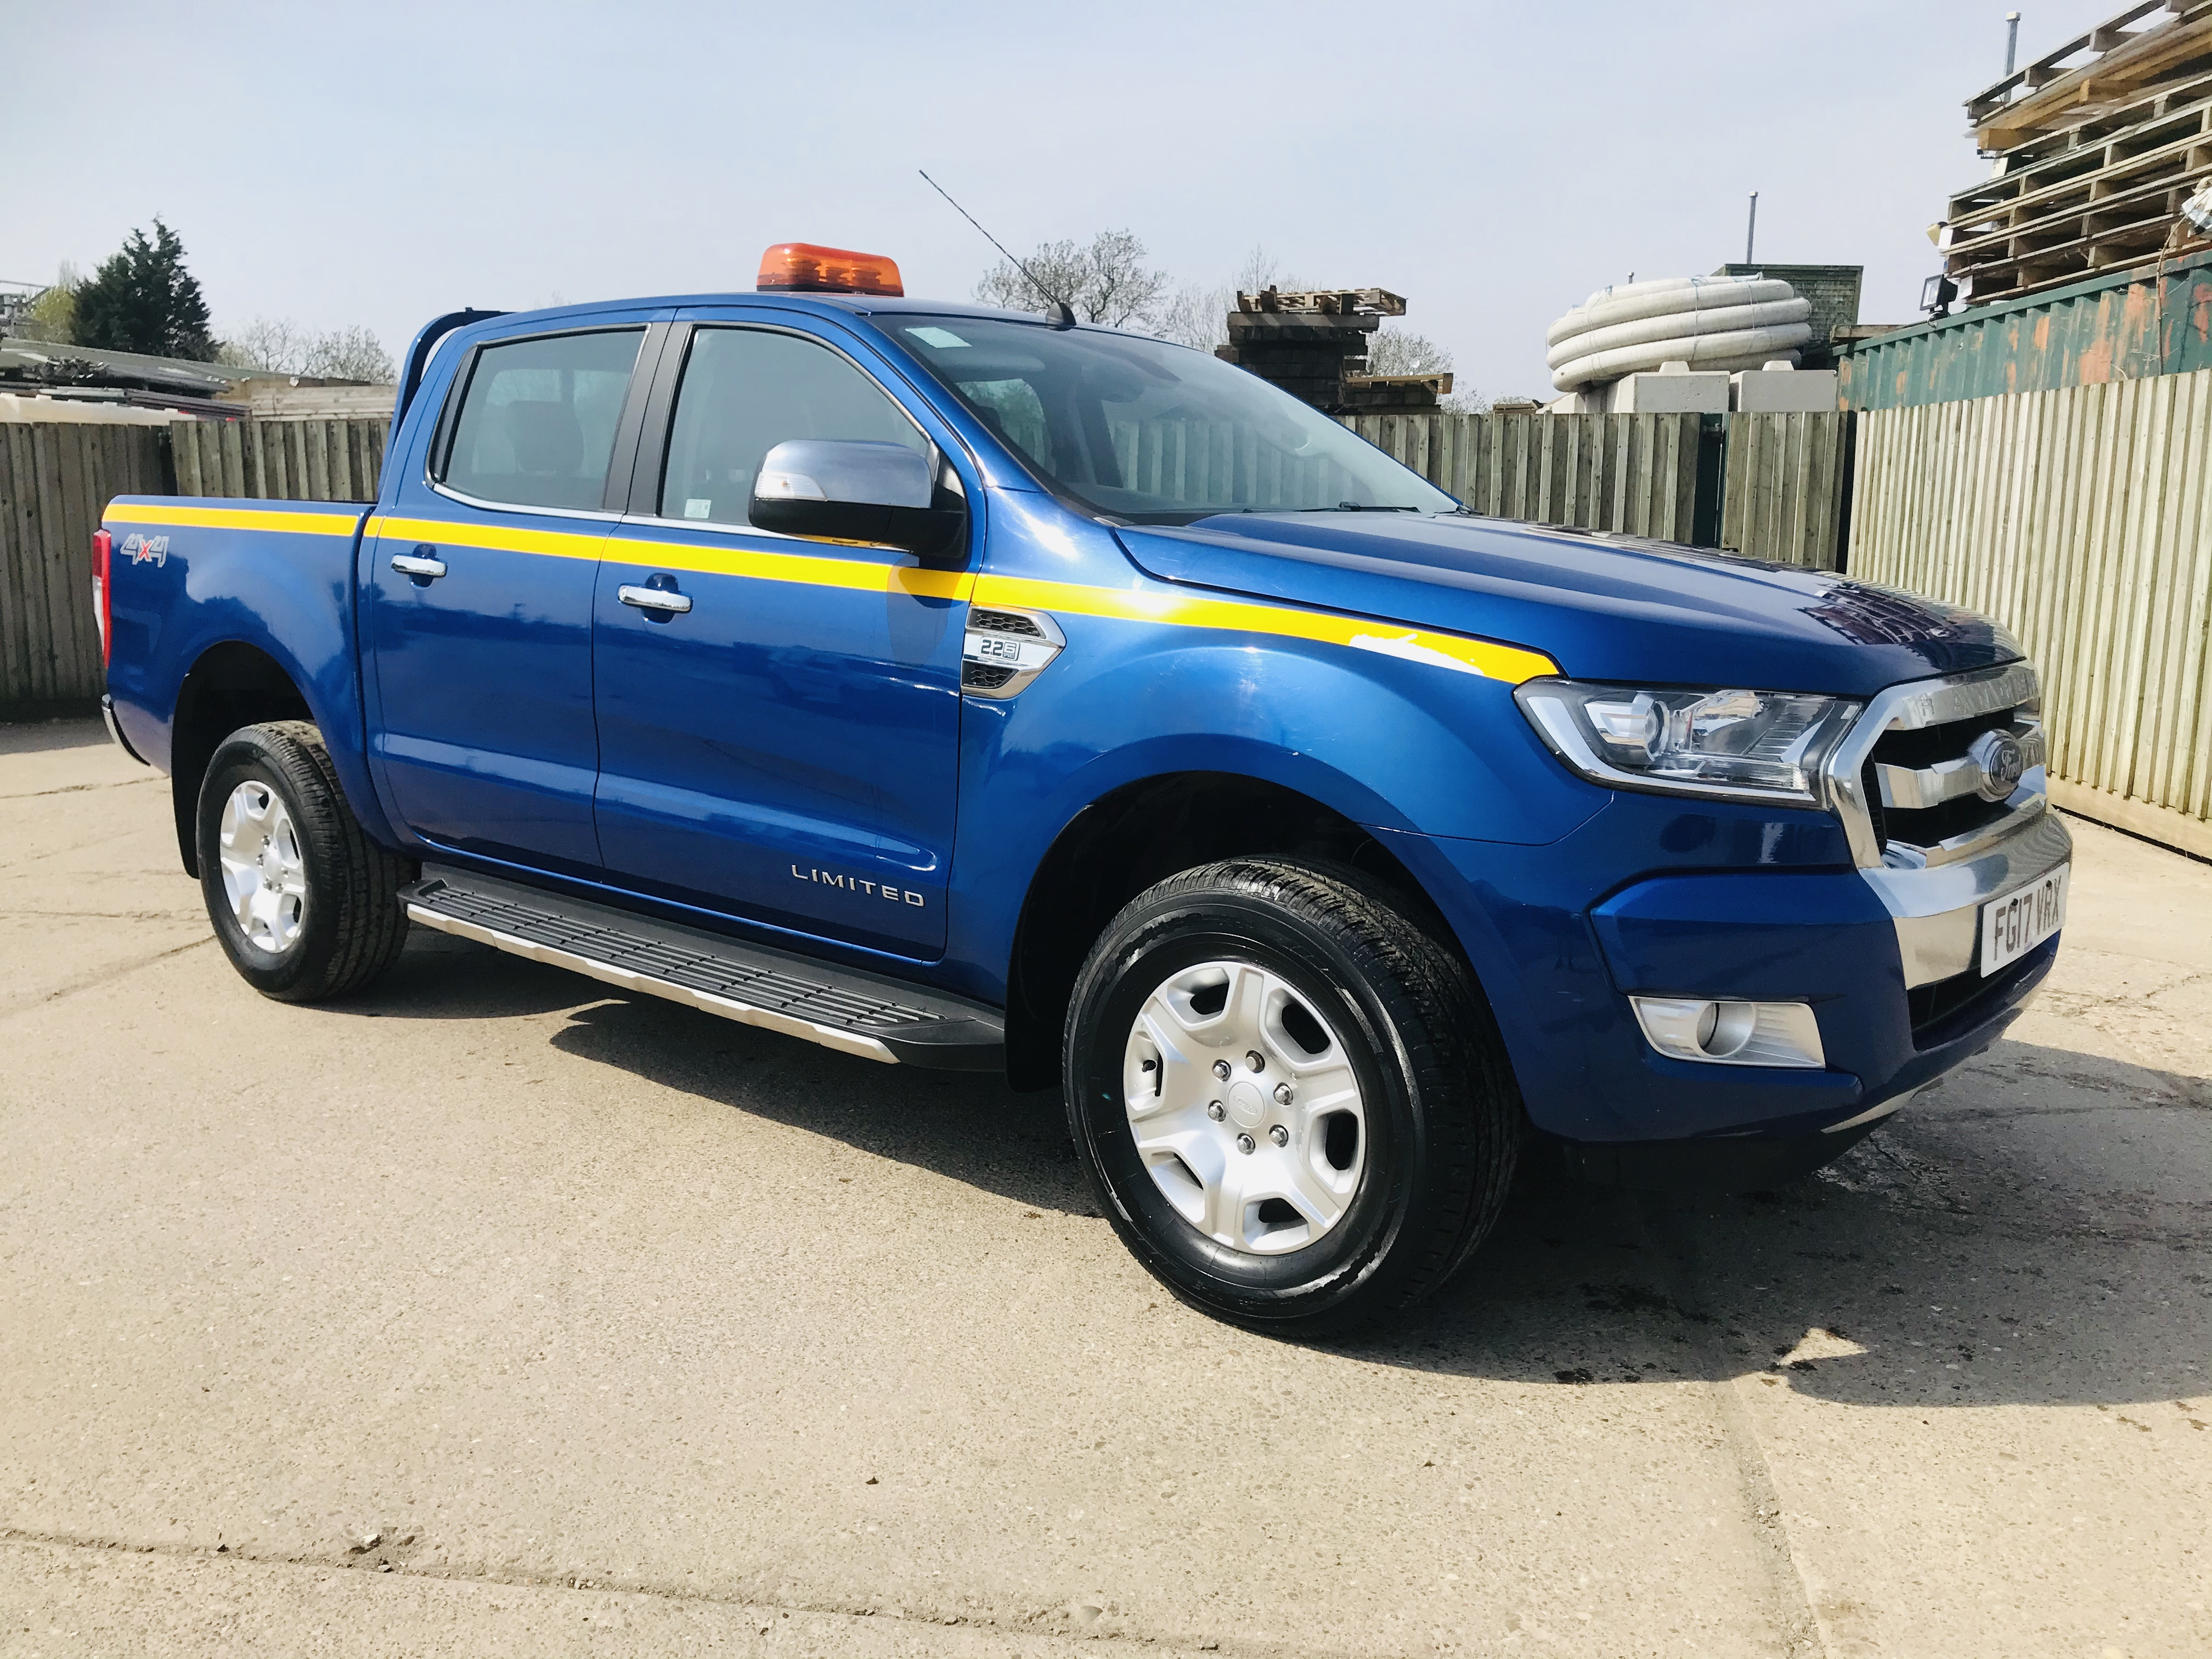 """ON SALE FORD RANGER 2.2TDCI """"LIMITED"""" D/C PICK UP (17 REG) 1 OWNER FSH - FULL LEATHER - CLIMATE & AC - Image 2 of 38"""